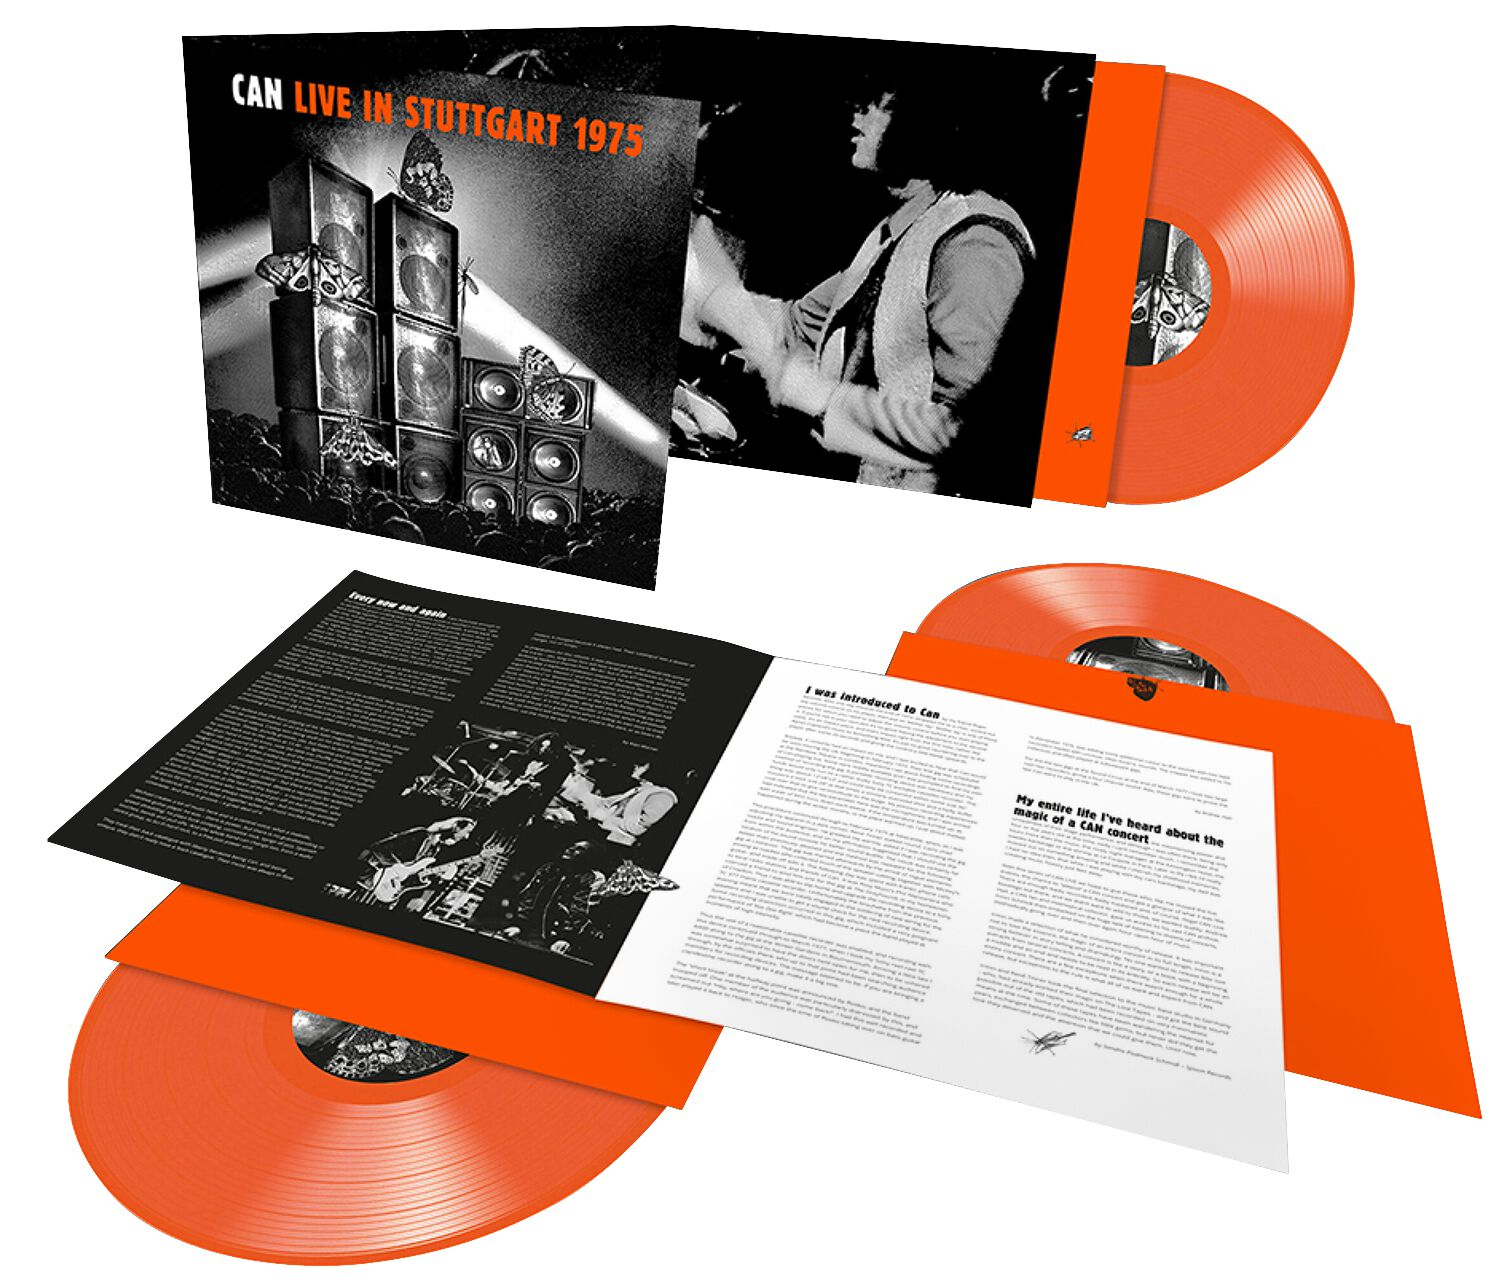 Image of Can Live in Stuttgart 1975 3-LP orange